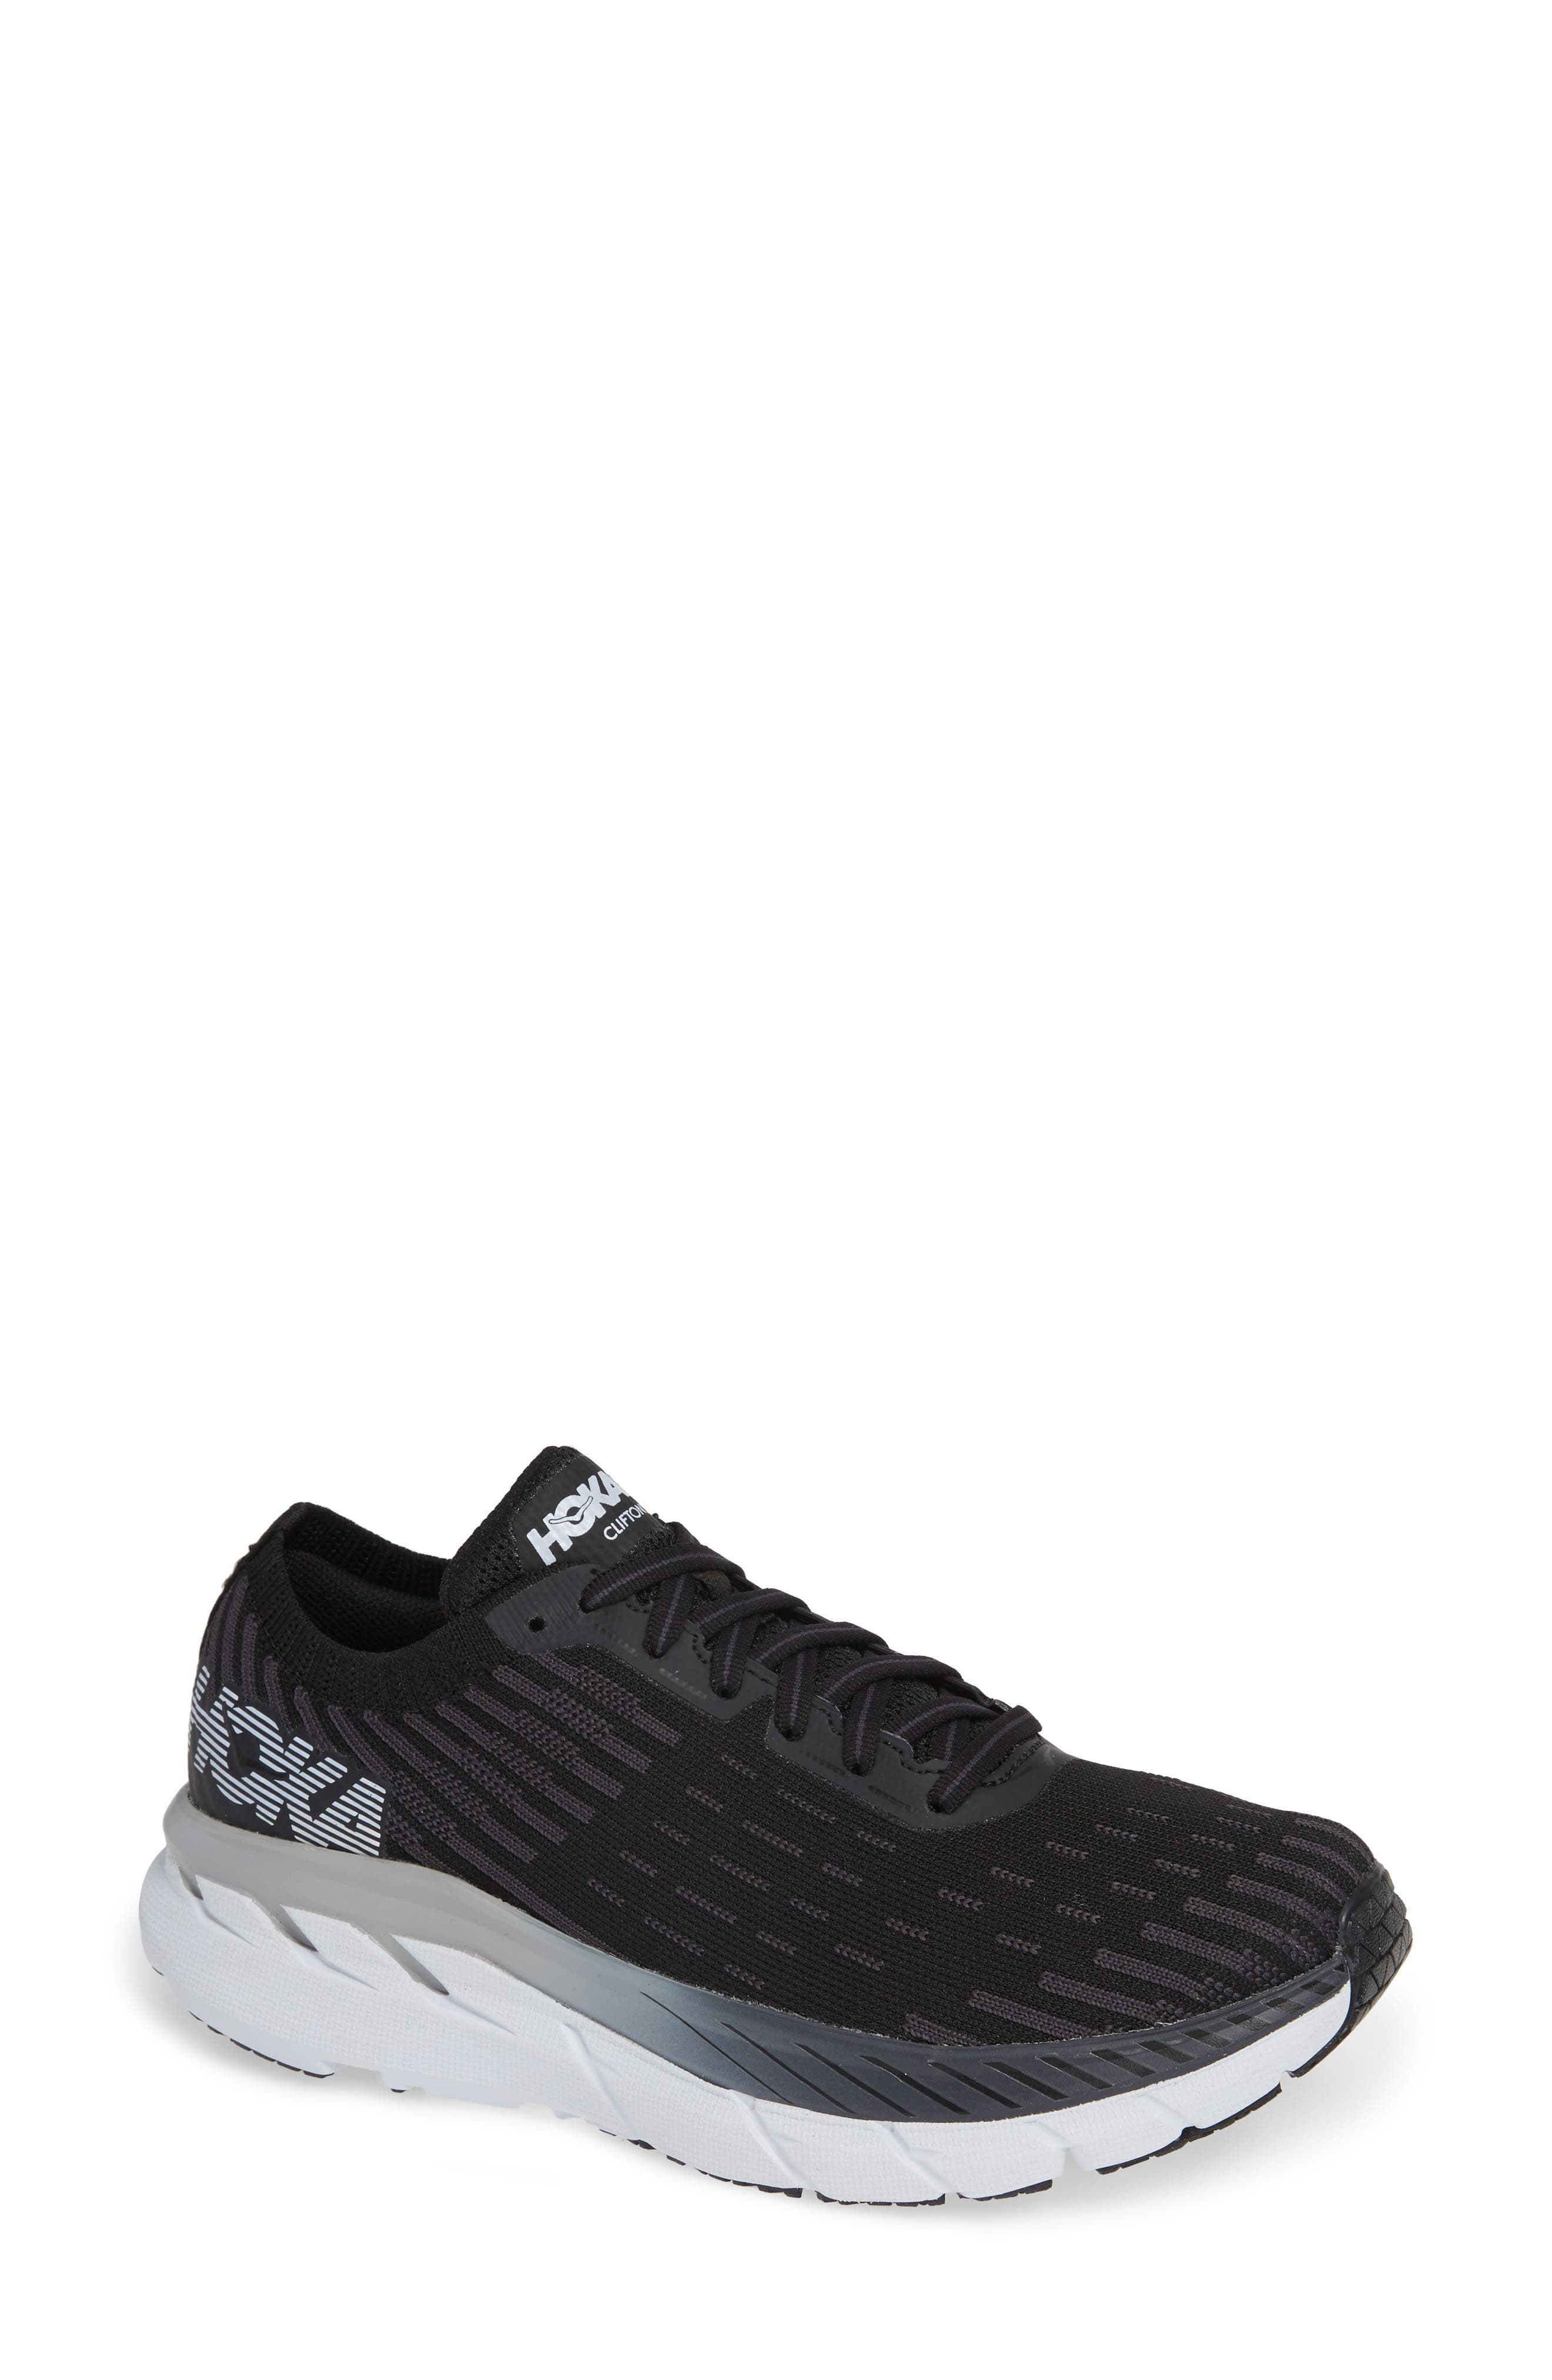 HOKA ONE ONE Clifton 5 Knit Running Shoe in Black/ White